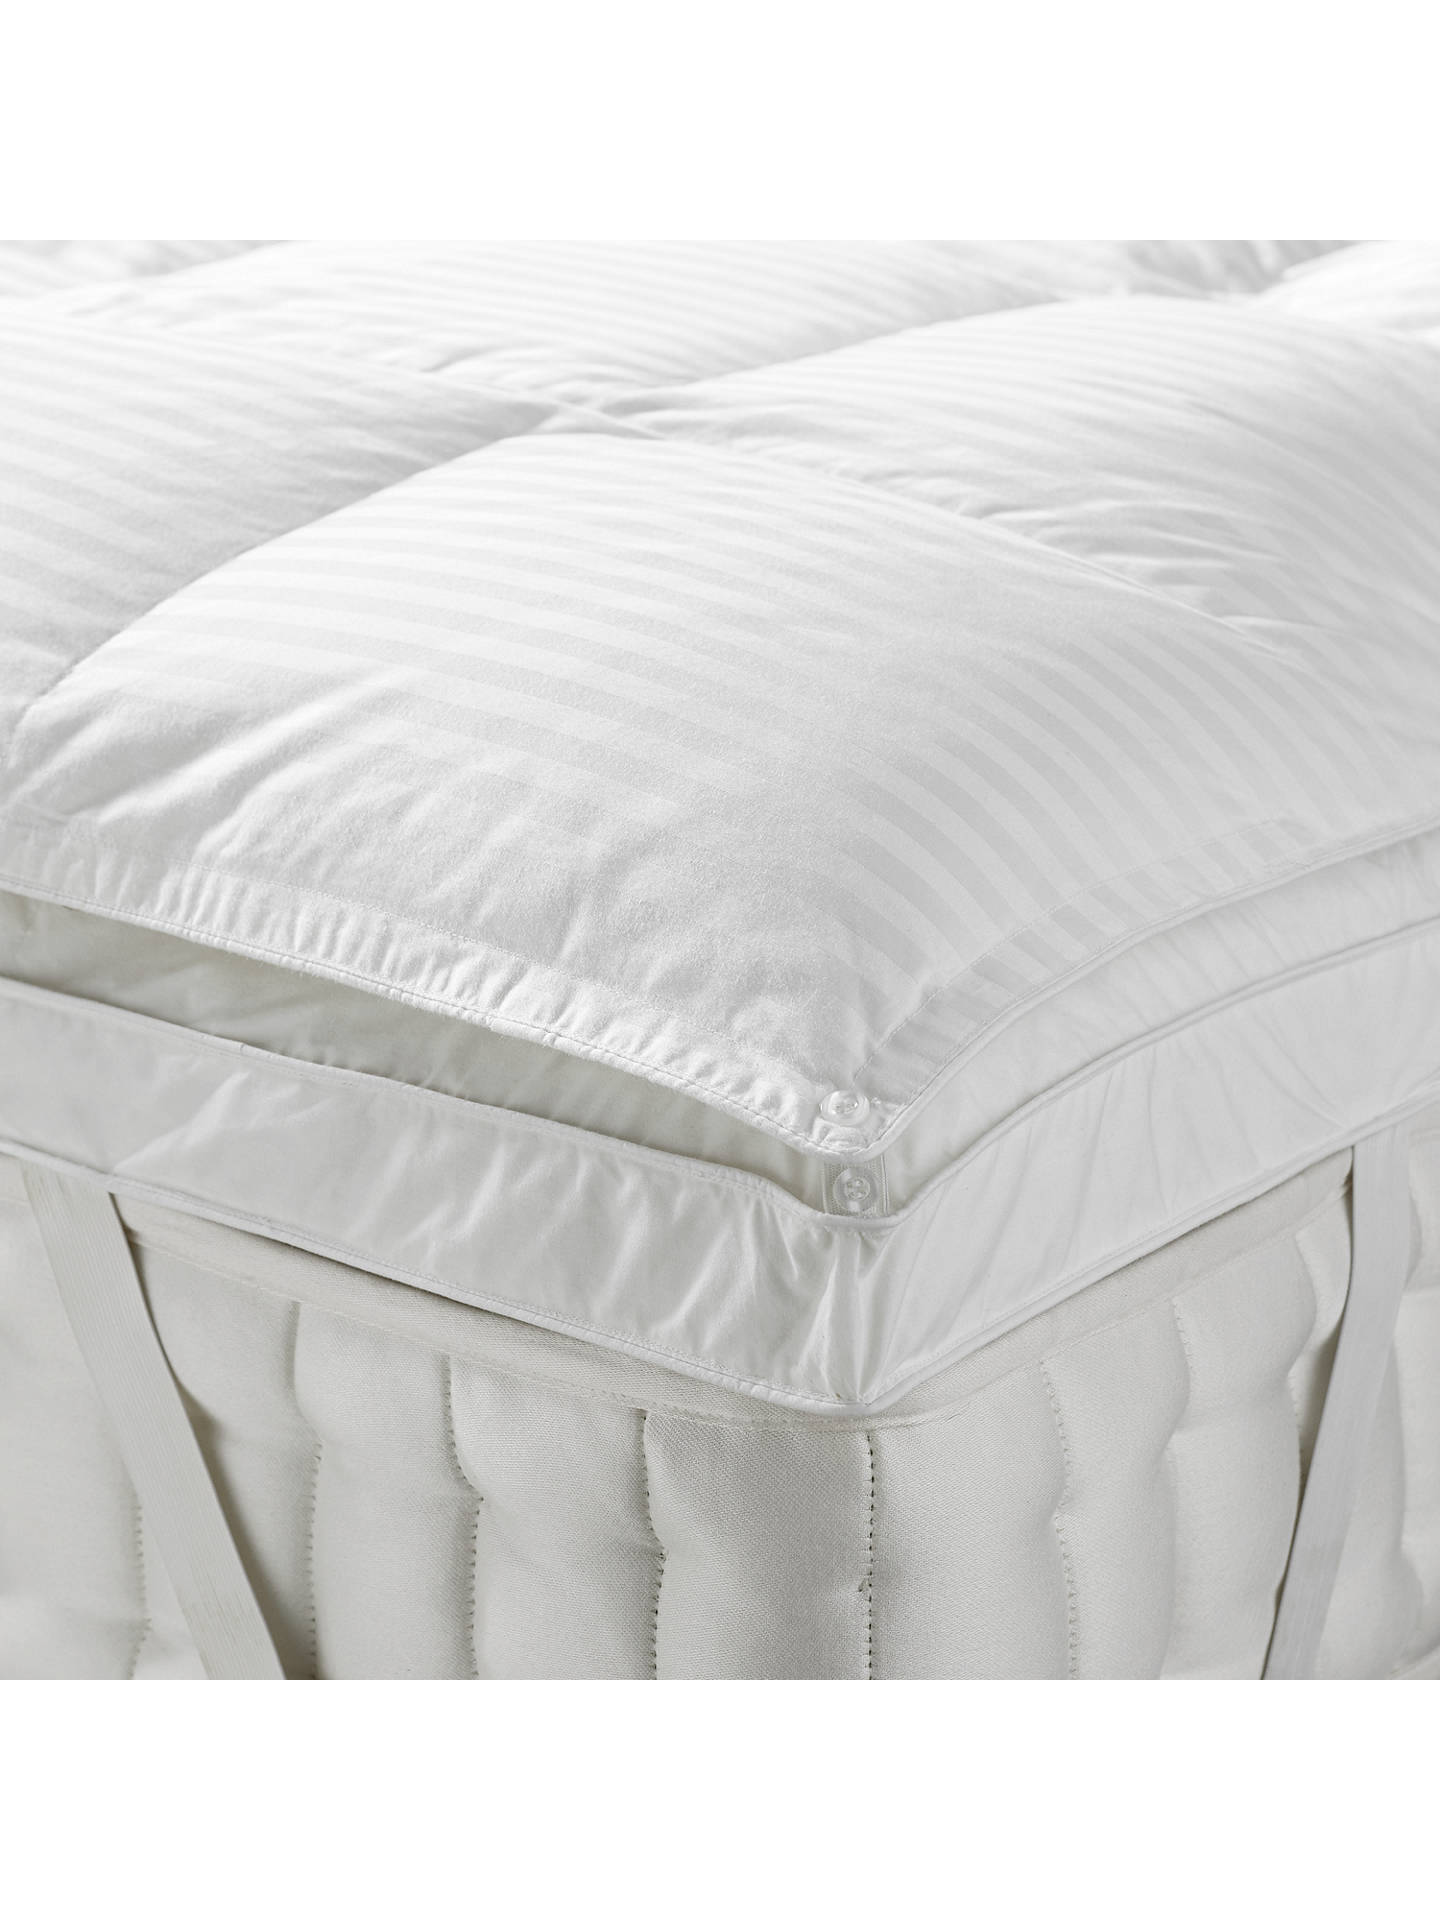 BuyJohn Lewis & Partners Natural Collection Hungarian Goose Down Mattress Topper, Single Online at johnlewis.com